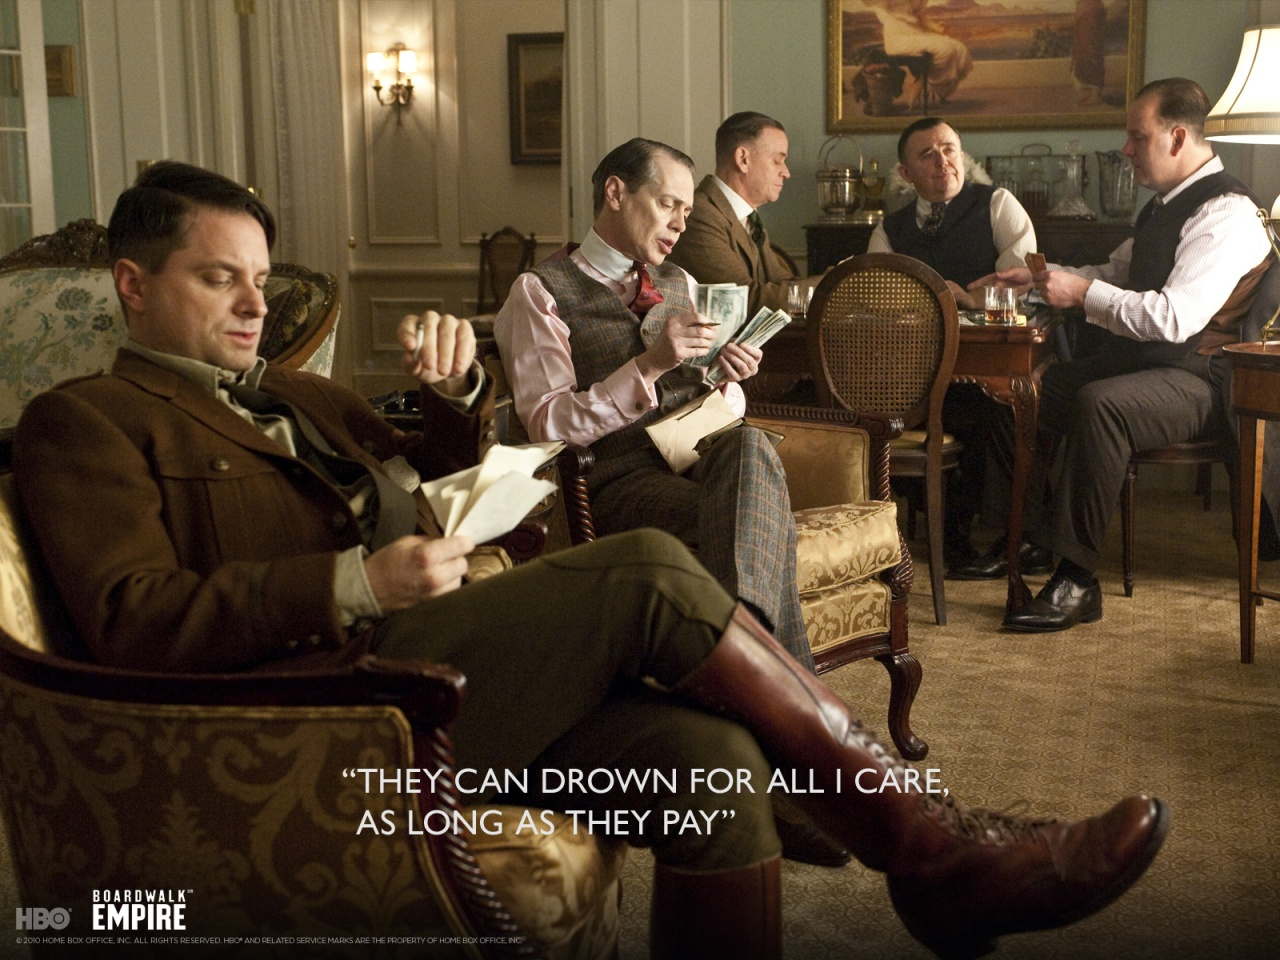 They can drown, while they pay - Boardwalk Empire